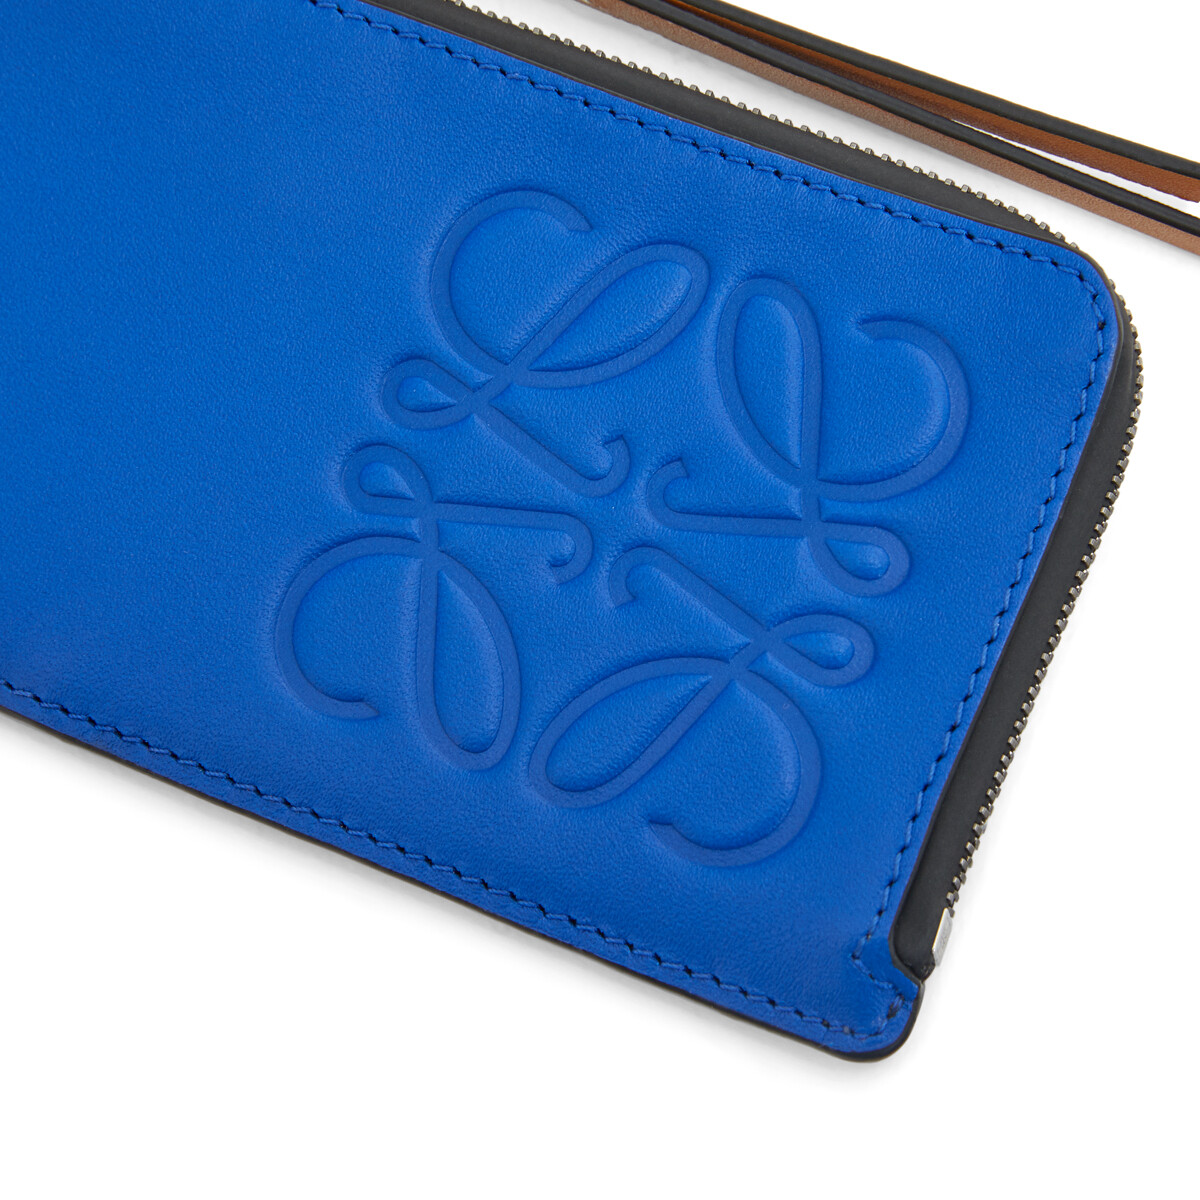 LOEWE Brand Coin Cardholder Large Electric Blue/Orange front